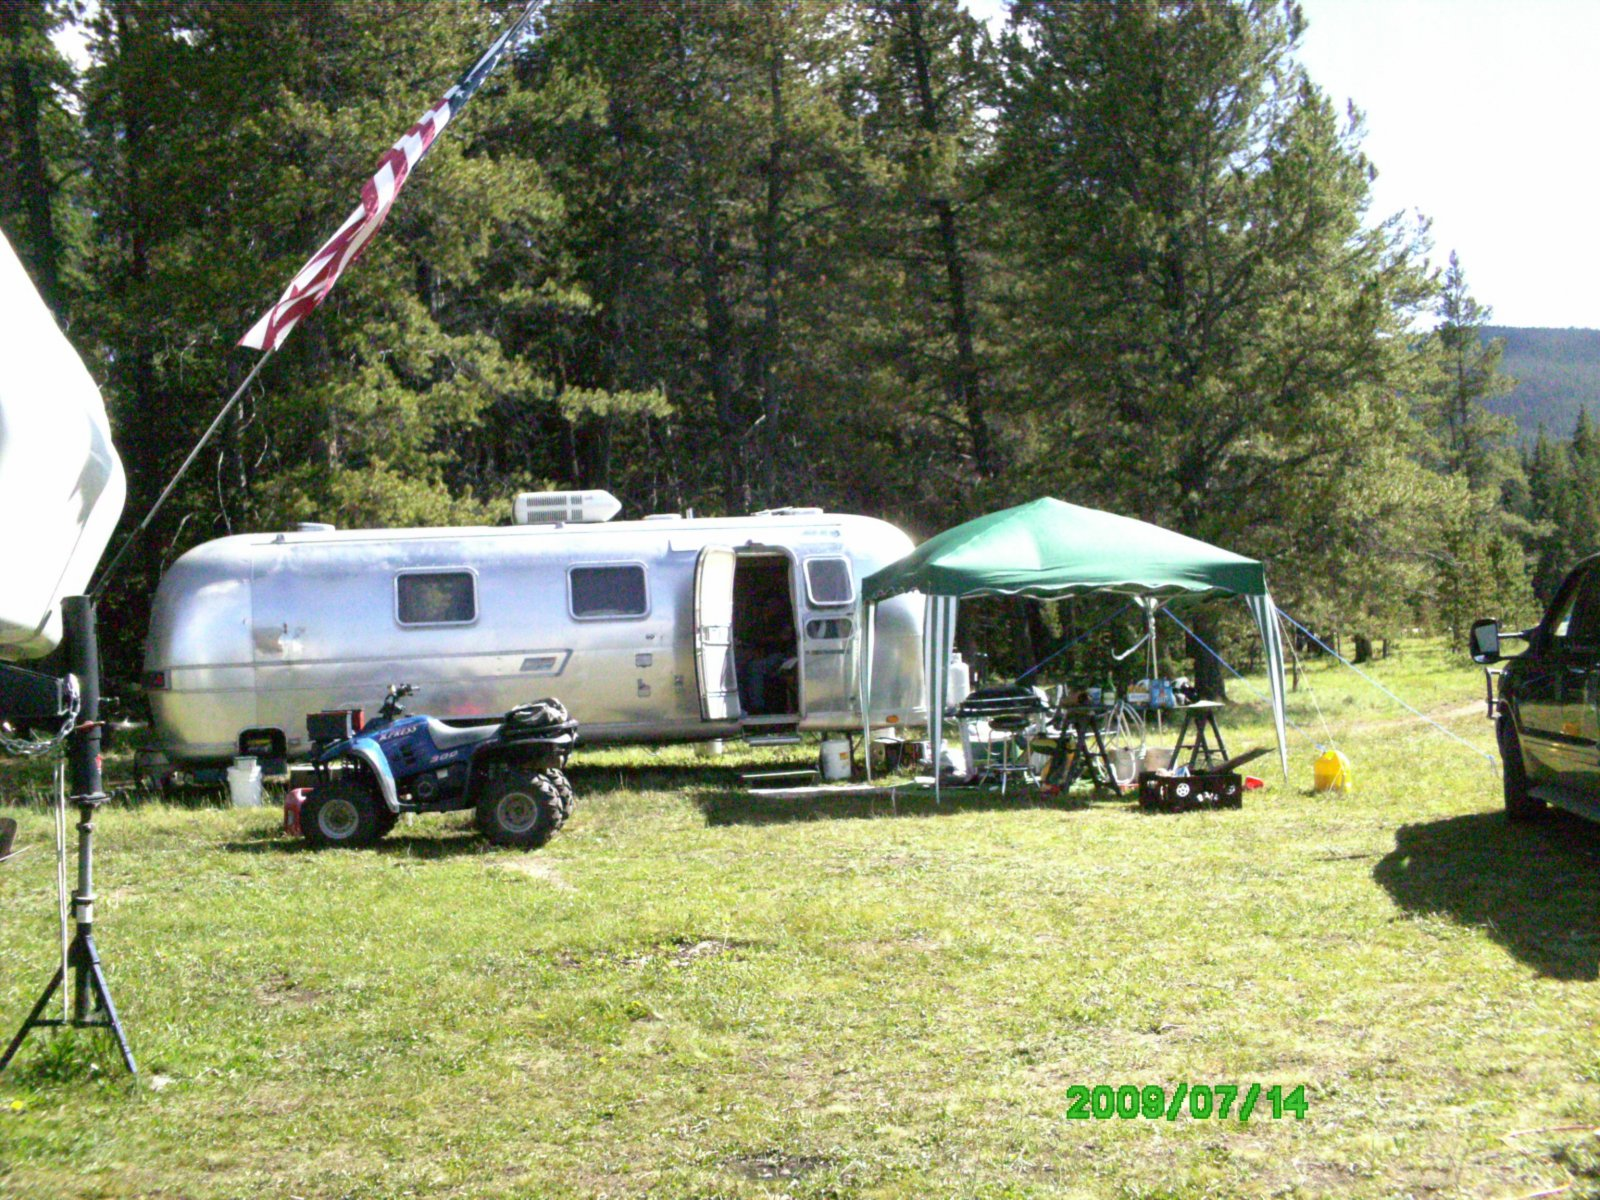 Click image for larger version  Name:Colorado boondocking.jpg Views:76 Size:500.9 KB ID:92068